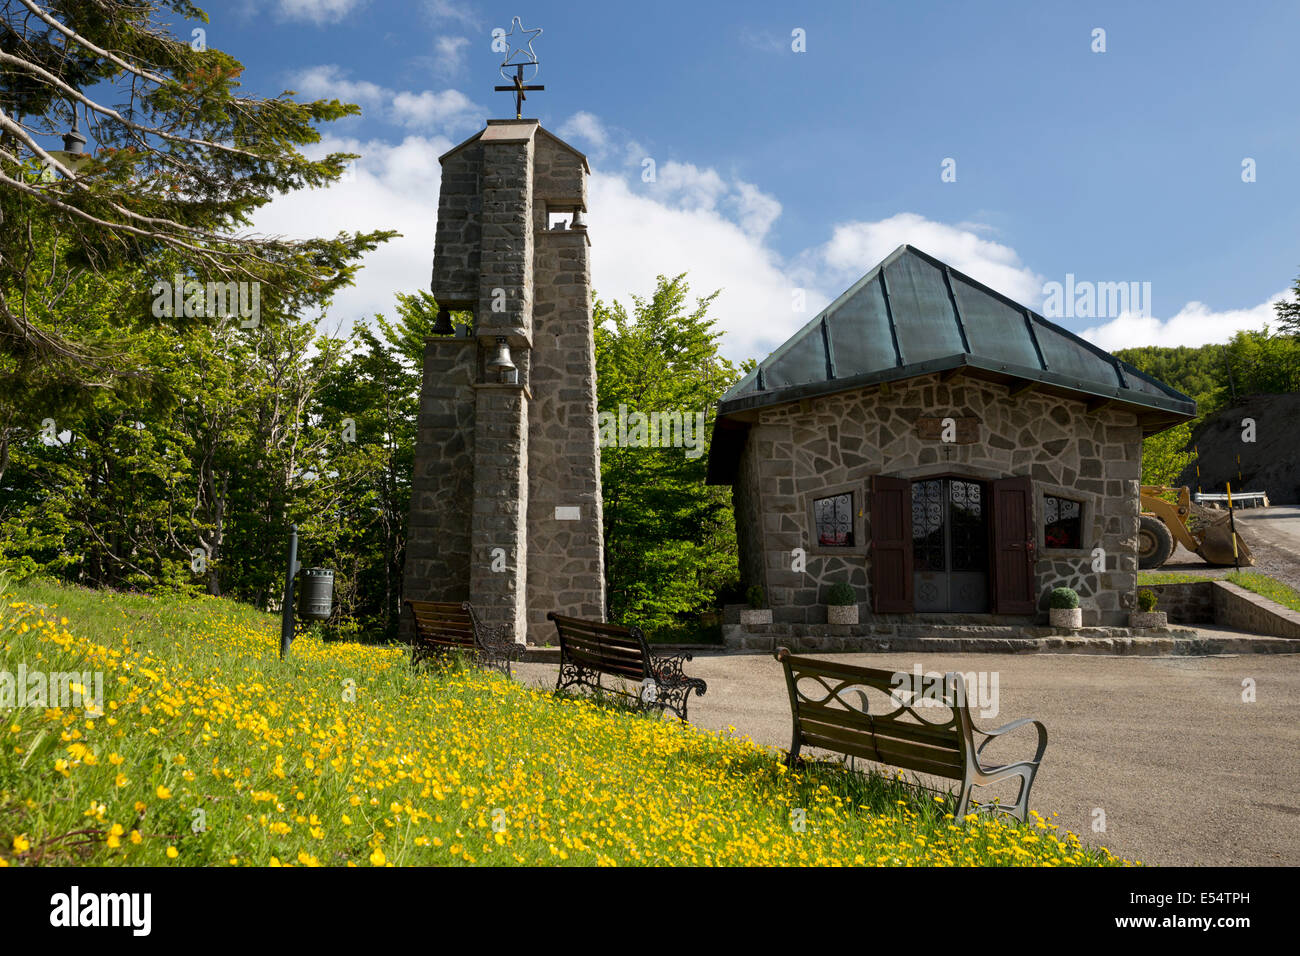 Chapel at the summit of Passo della Radici, near San Pellegrino in Alpe, Garfagnana, Emilia Romagna, Italy Stock Photo